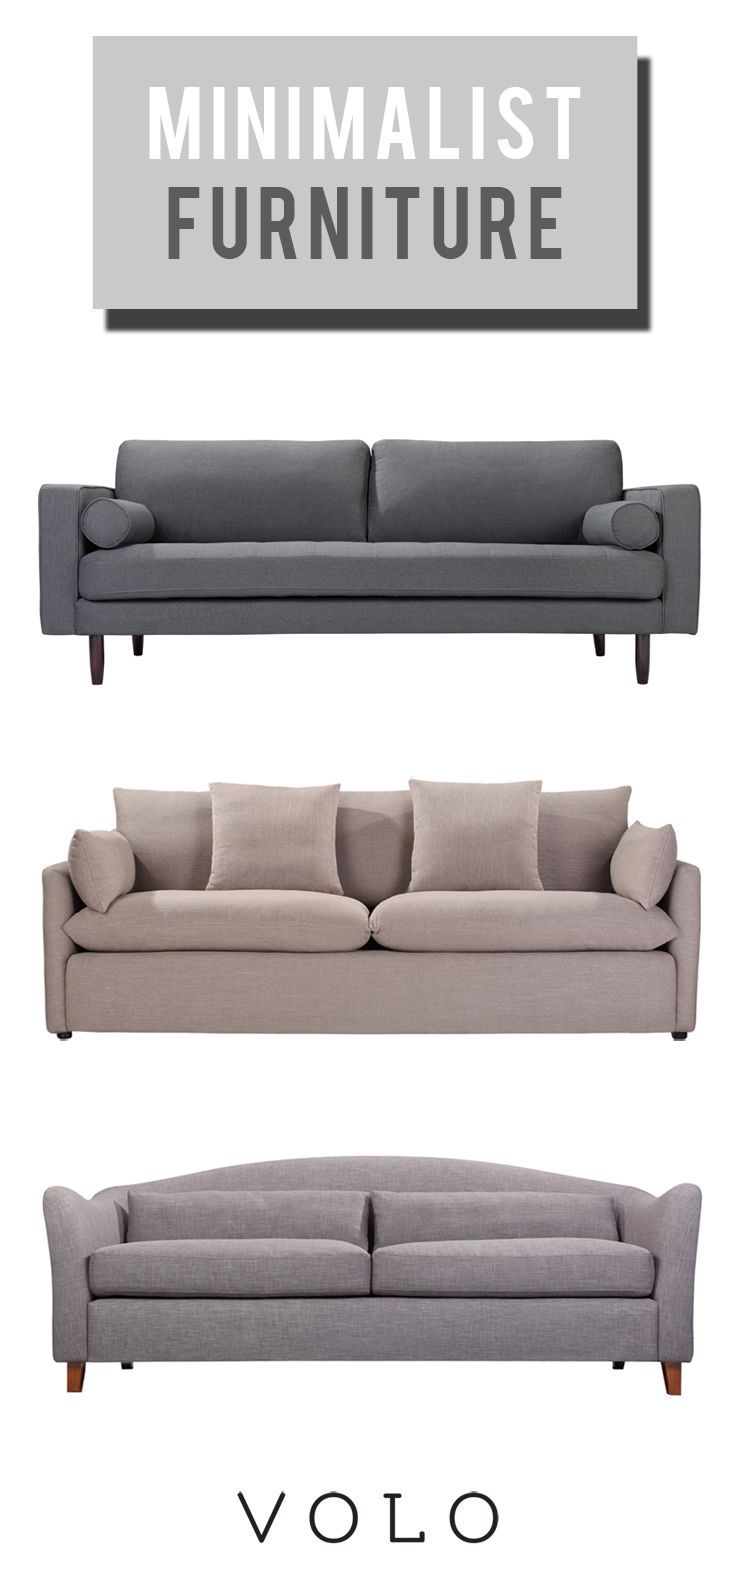 Modern minimalist furniture up to 70 off retail at for Furniture 70 off